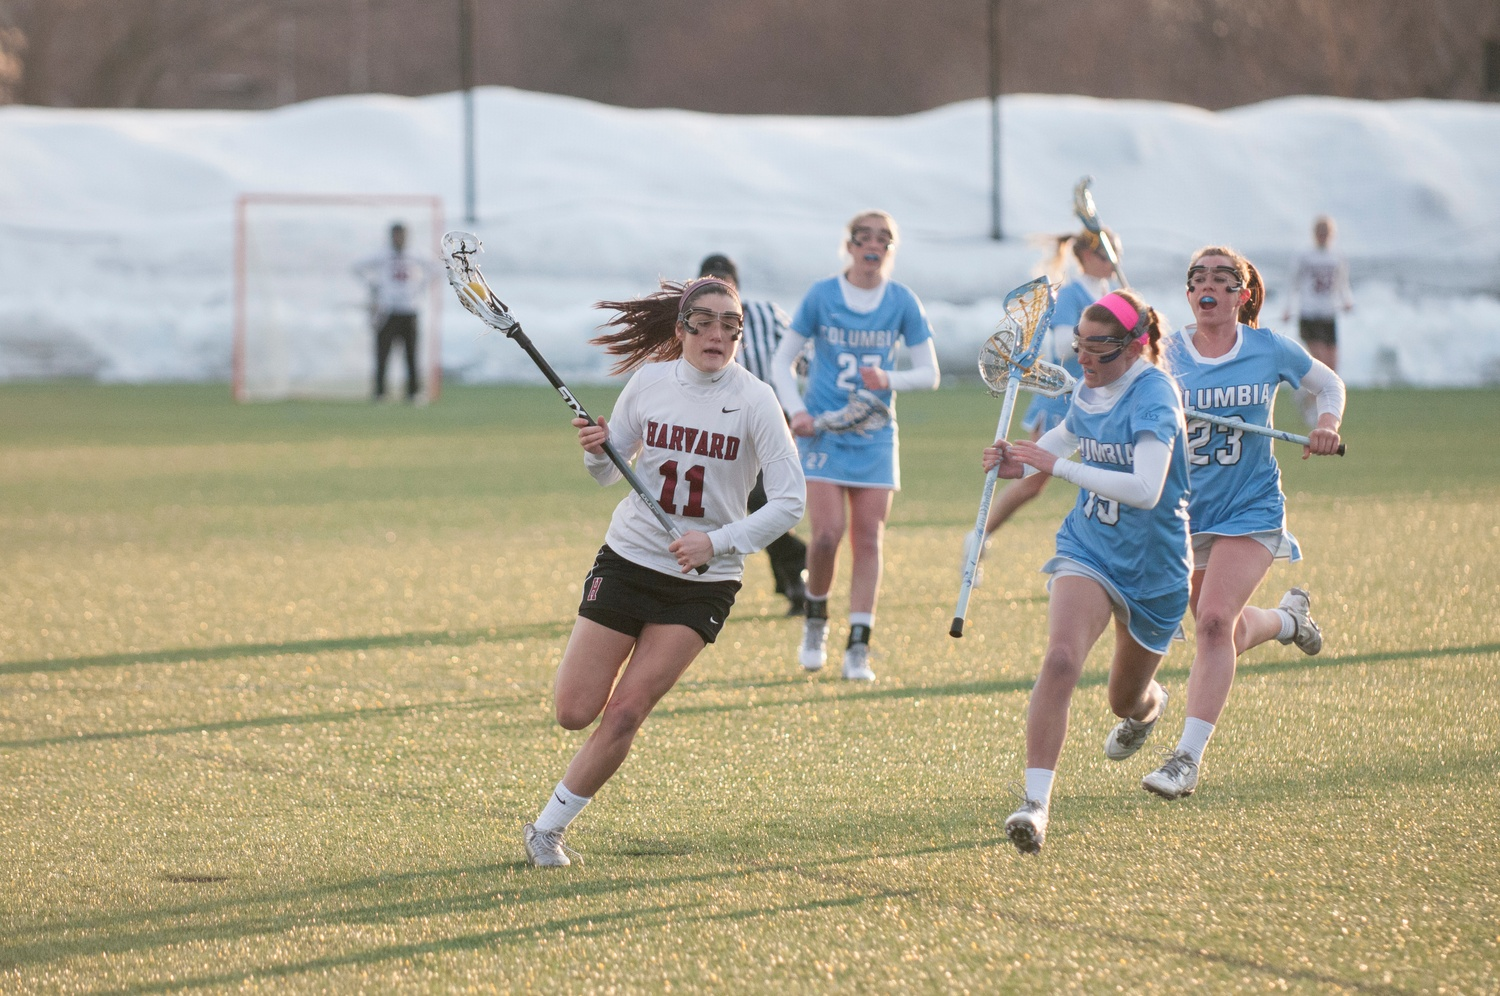 With a young team, the Crimson looked to its early games for experience before Ivies.